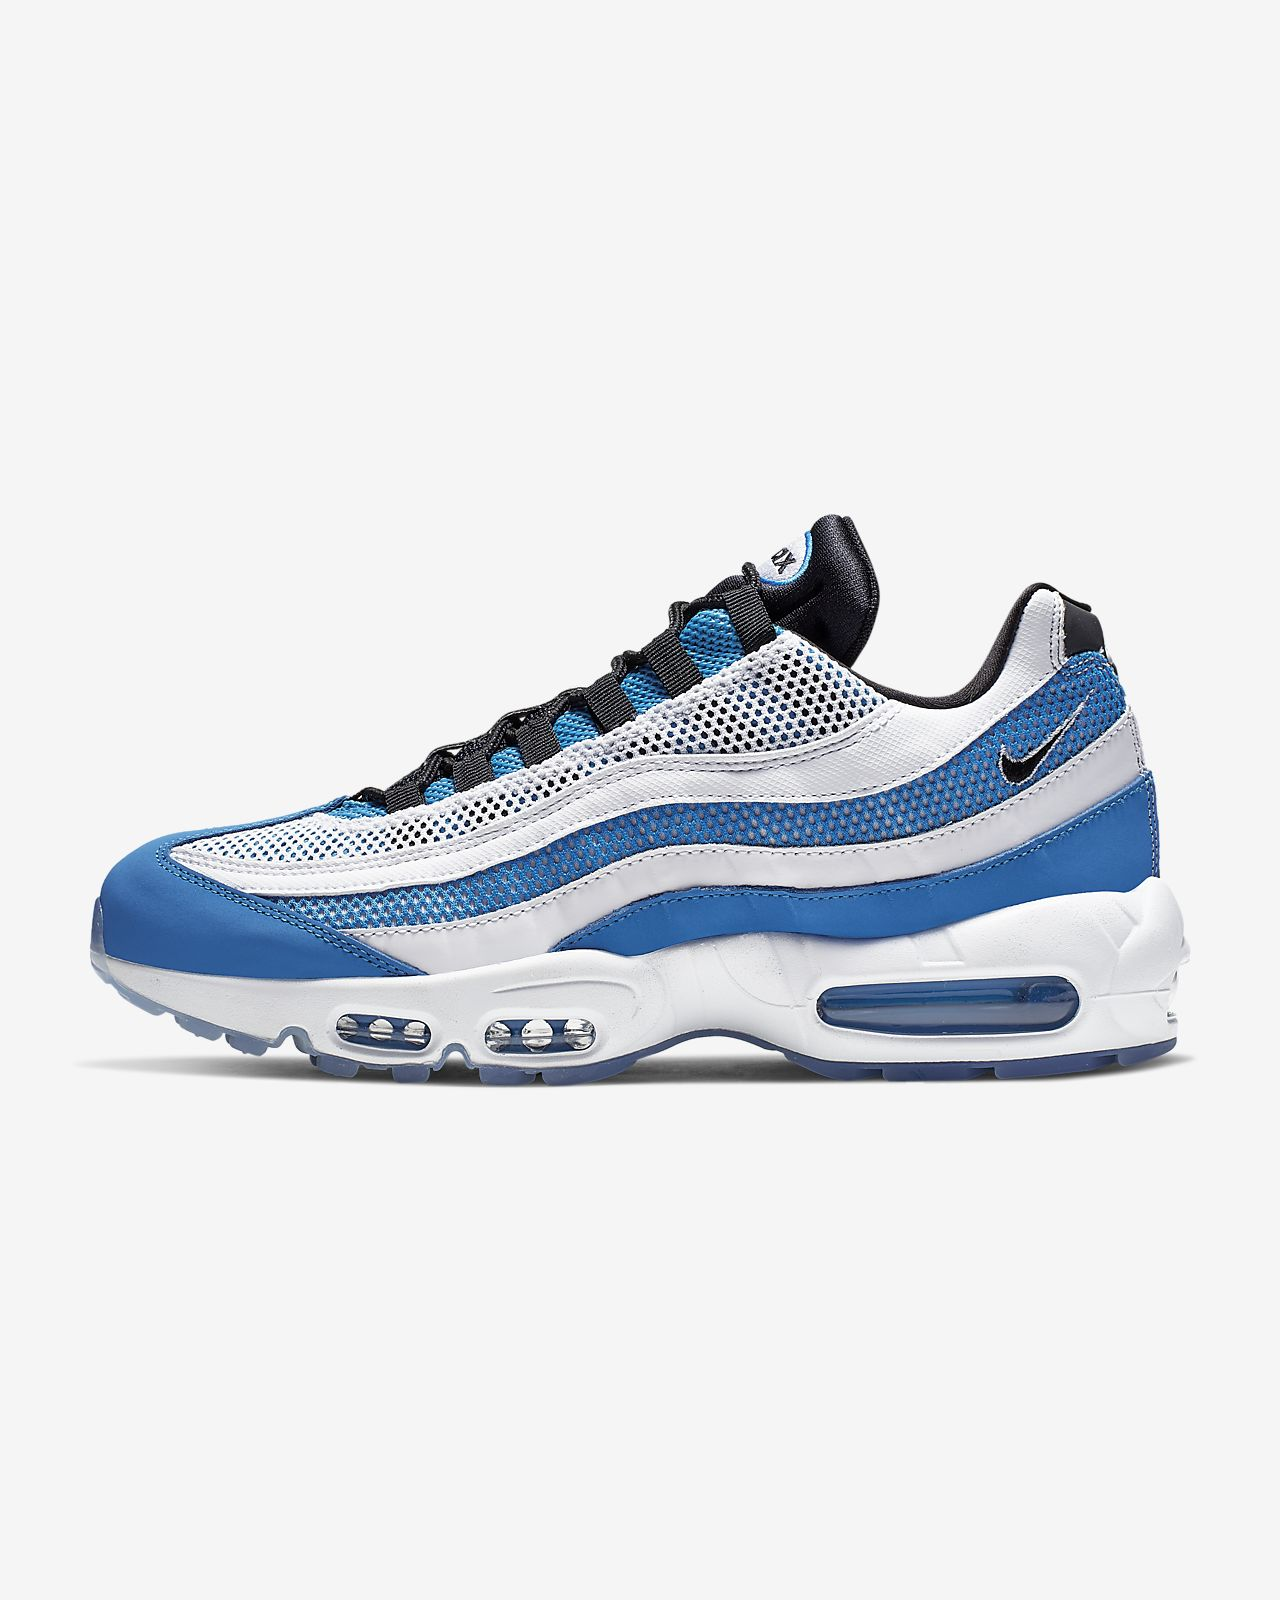 los angeles special sales crazy price Nike Air Max 95 Essential Men's Shoe